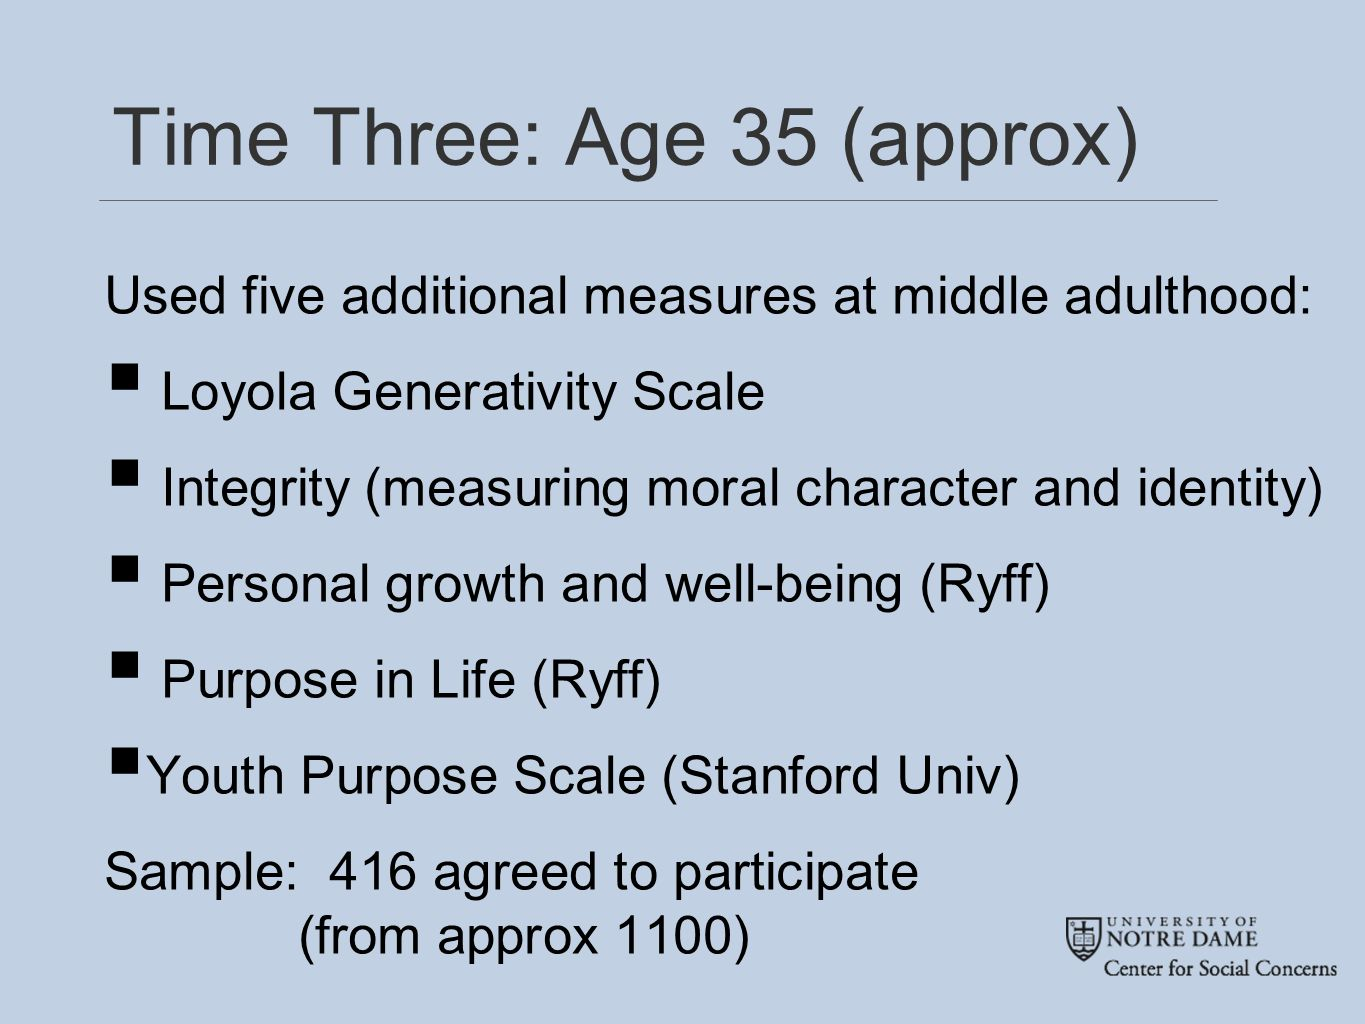 Time Three: Age 35 (approx) Used five additional measures at middle adulthood:  Loyola Generativity Scale  Integrity (measuring moral character and identity)  Personal growth and well-being (Ryff)  Purpose in Life (Ryff)  Youth Purpose Scale (Stanford Univ) Sample: 416 agreed to participate (from approx 1100)